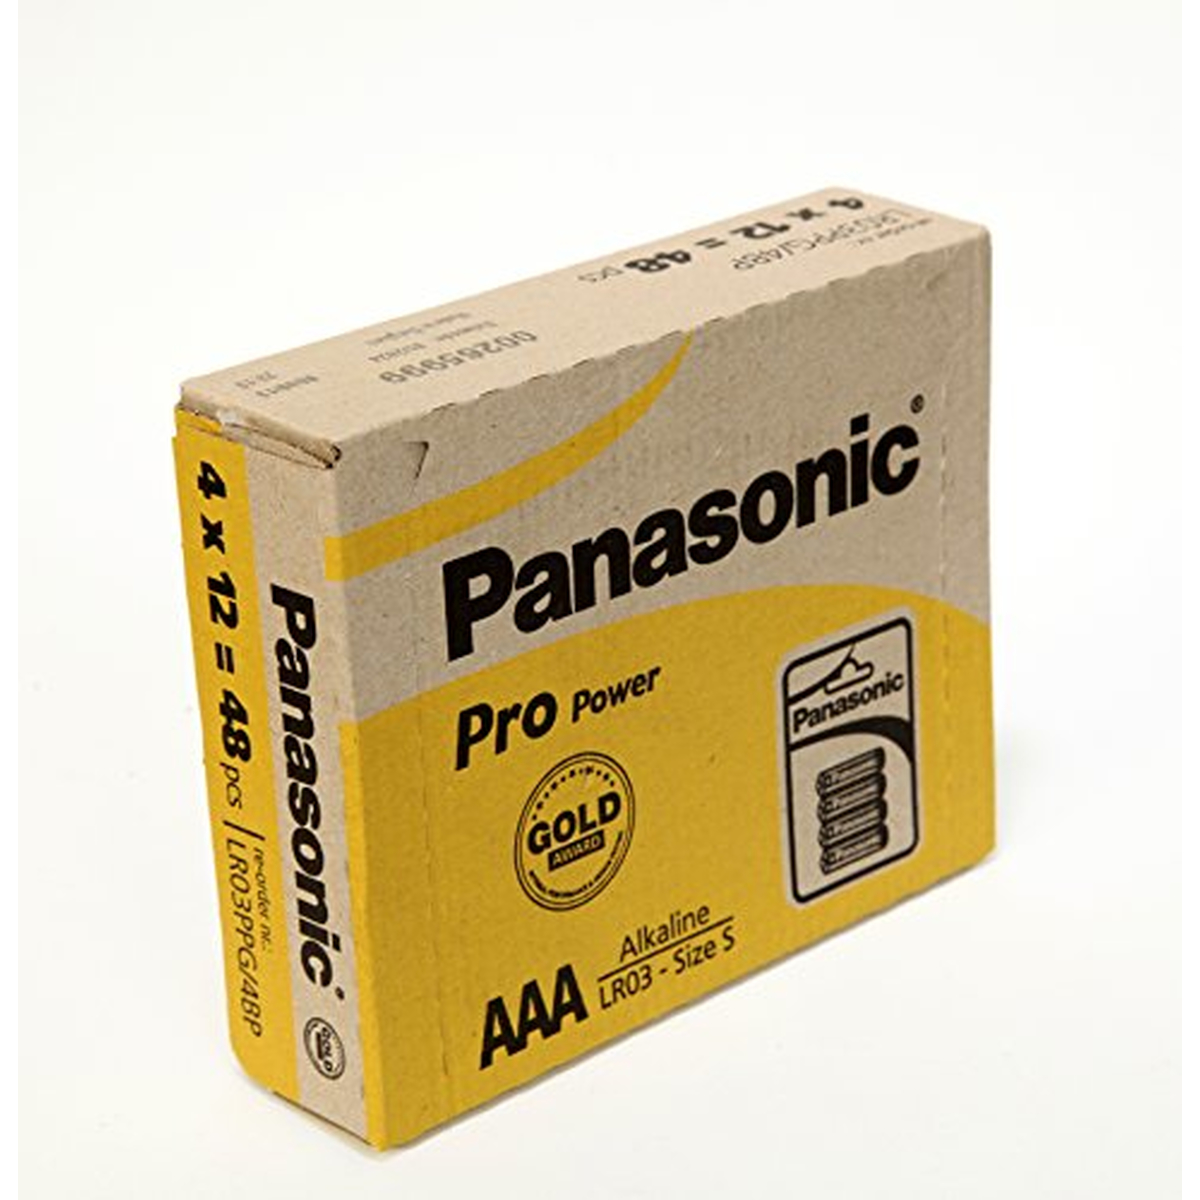 Panasonic Batterie Alkali Pro Power LR03PPG Micro